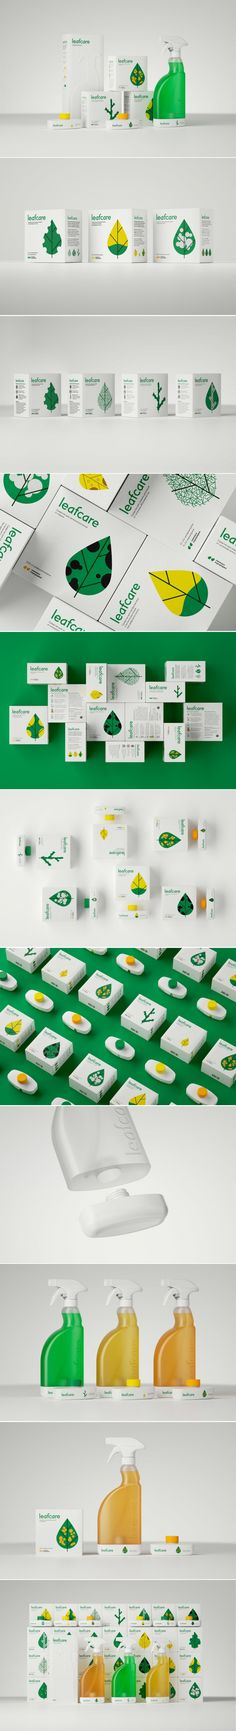 This Garden Care Concept Comes With Beautiful Flat-Style Graphics — The Dieline | Packaging & Branding Design & Innovation News